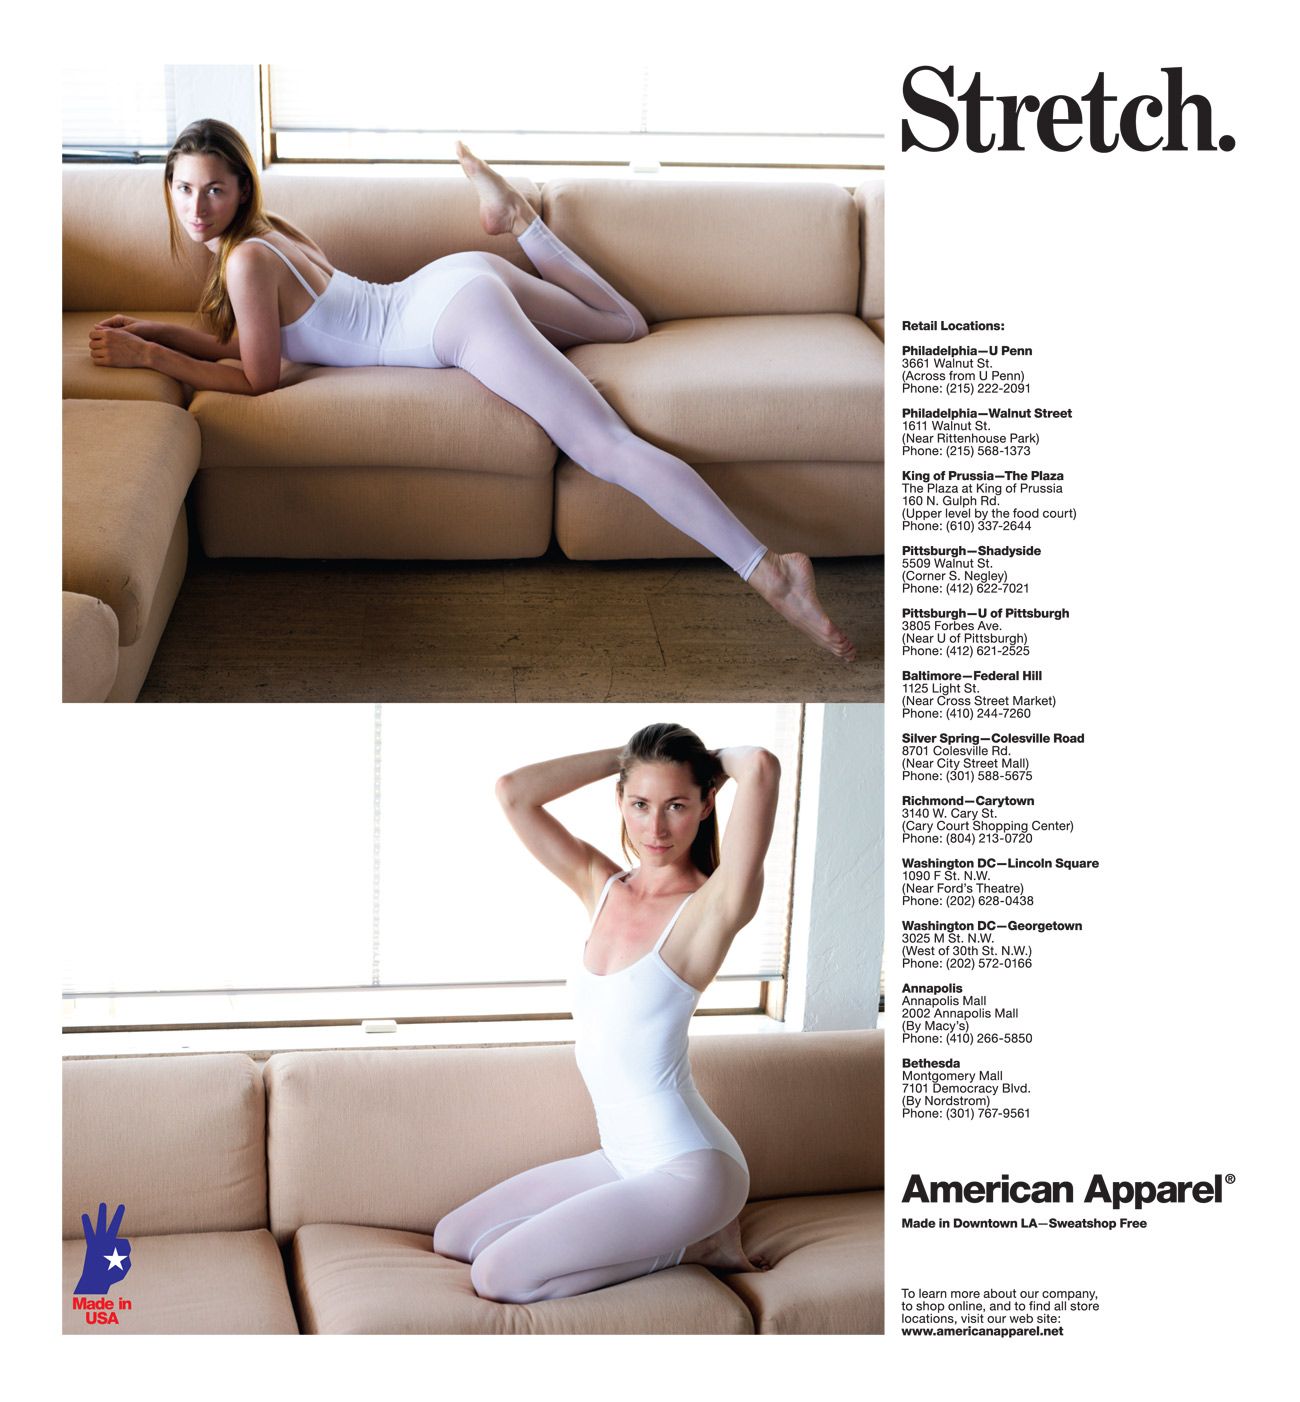 stretch escort video ads